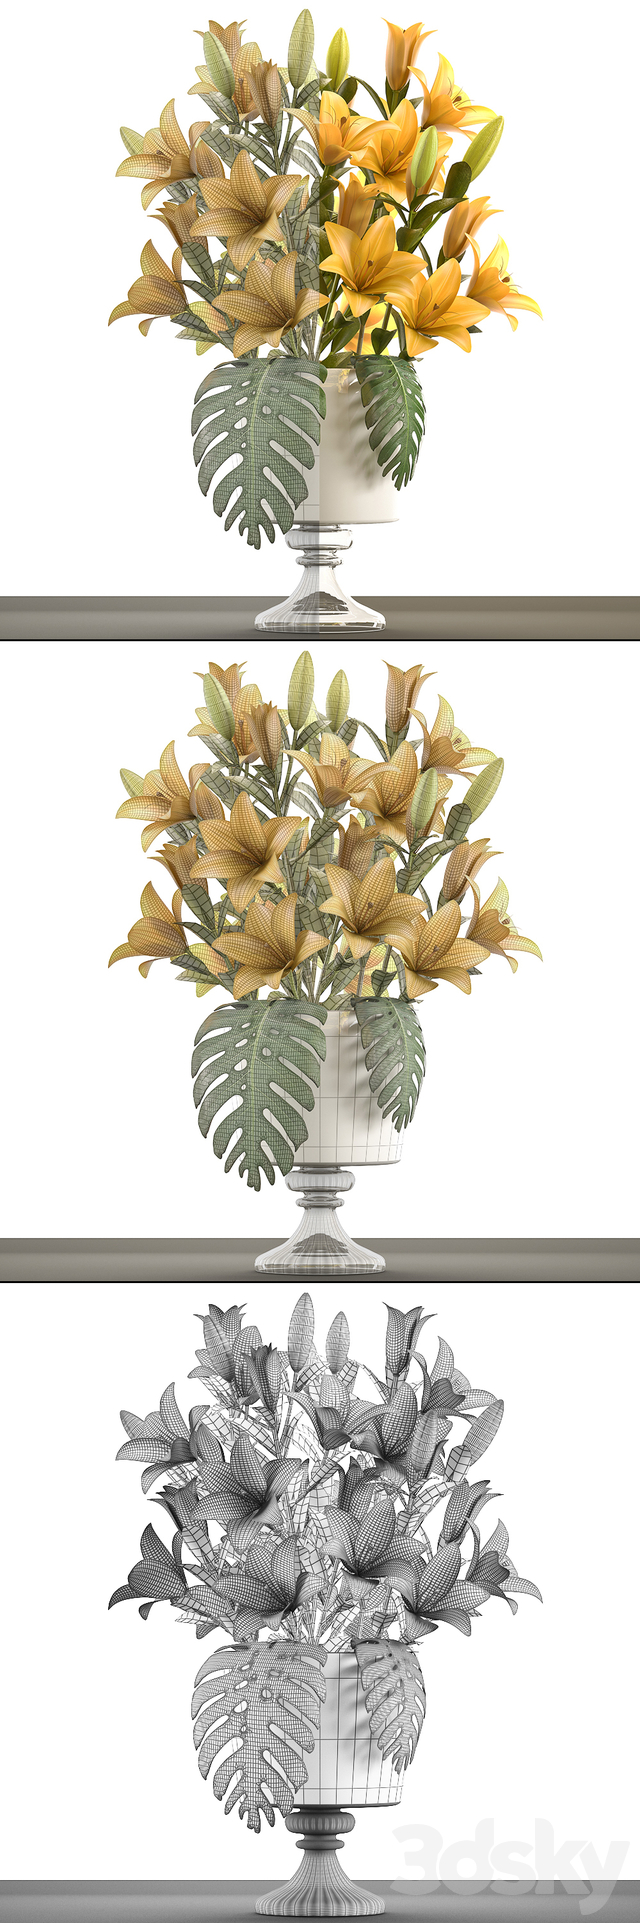 Collection of flowers 50. Bouquet of lilies.